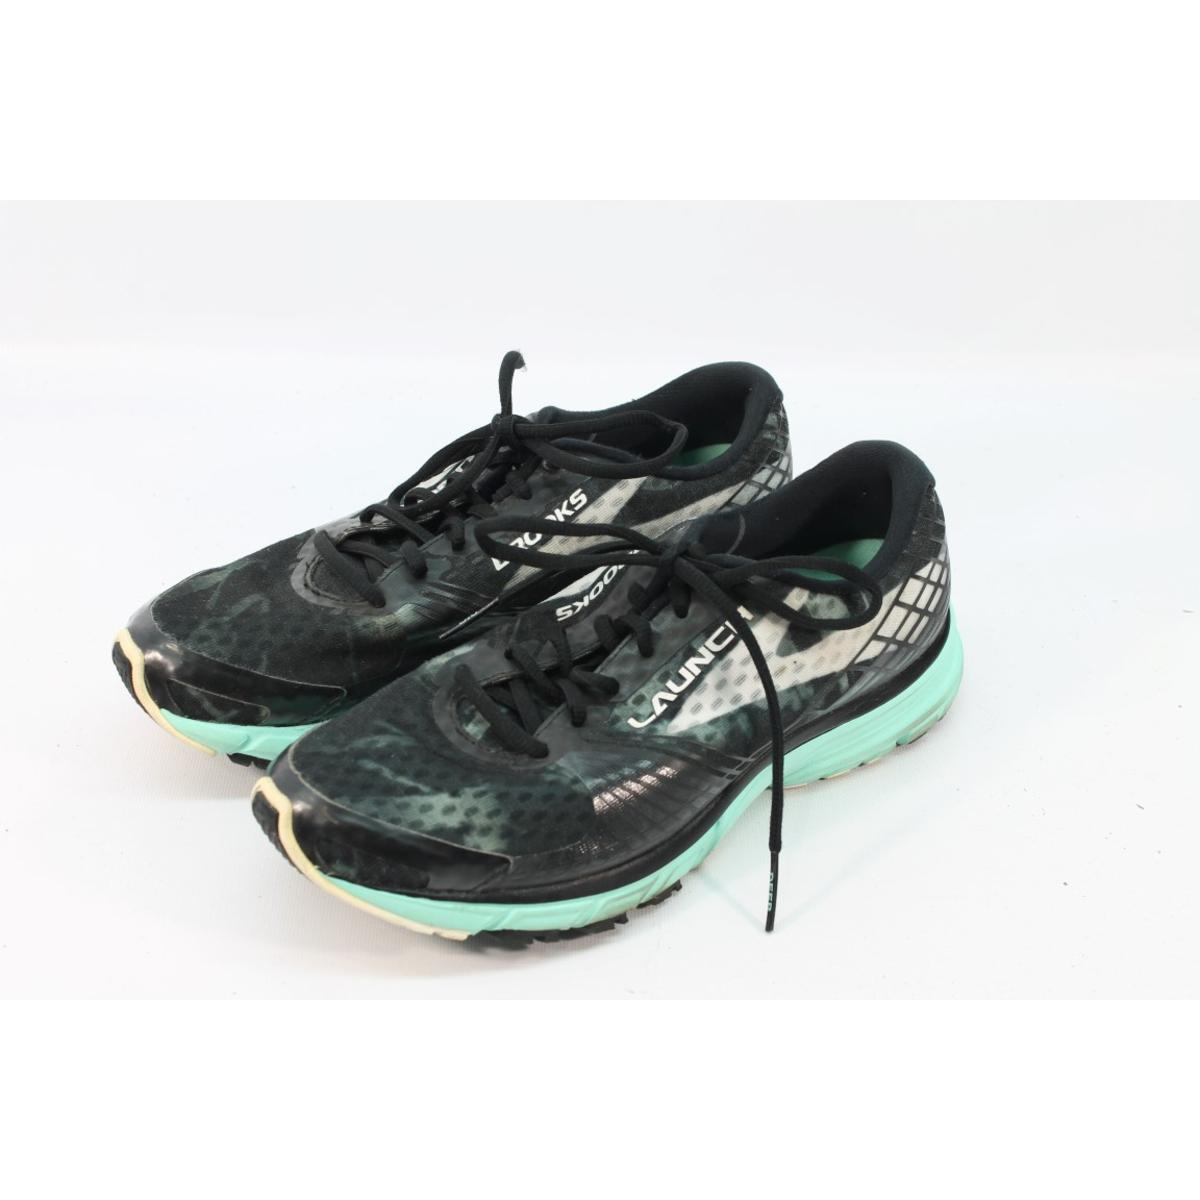 3139b4baa5a Details about Brooks Women s Launch 3 Black White Ice Green Road-Running  Shoes 9.5M